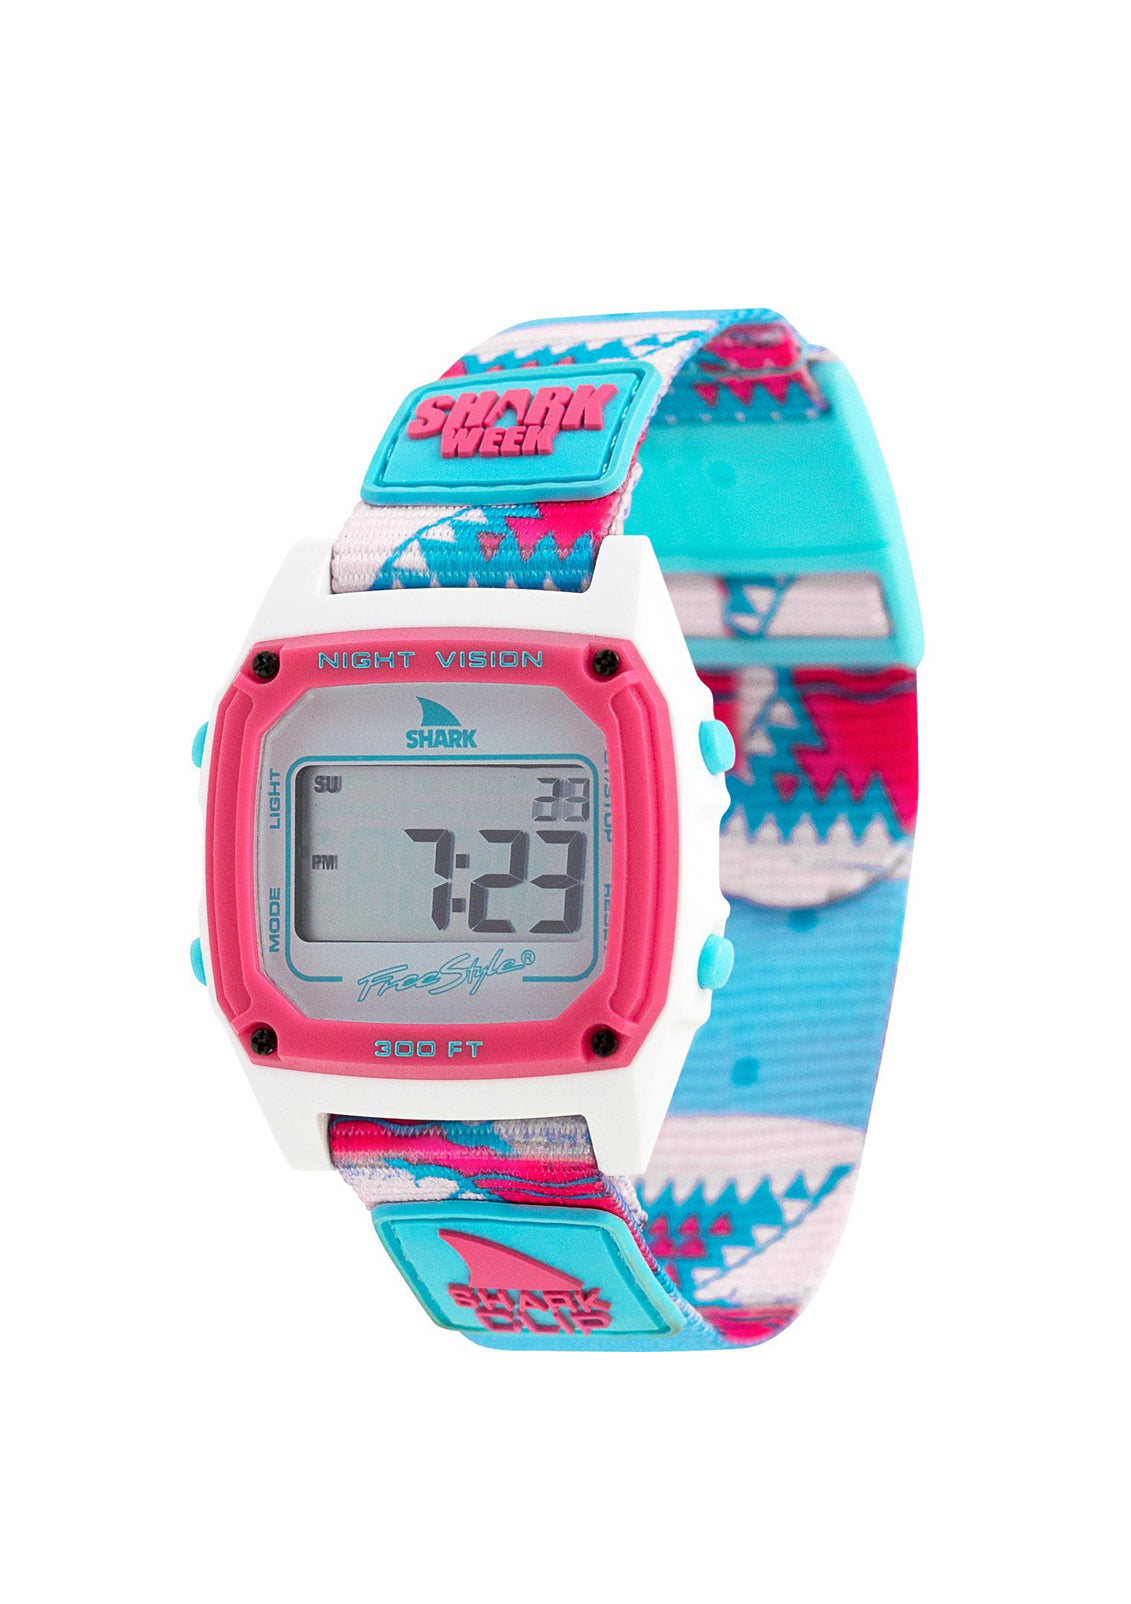 Shark Classic Clip Watch Shark Week Pink Teeth